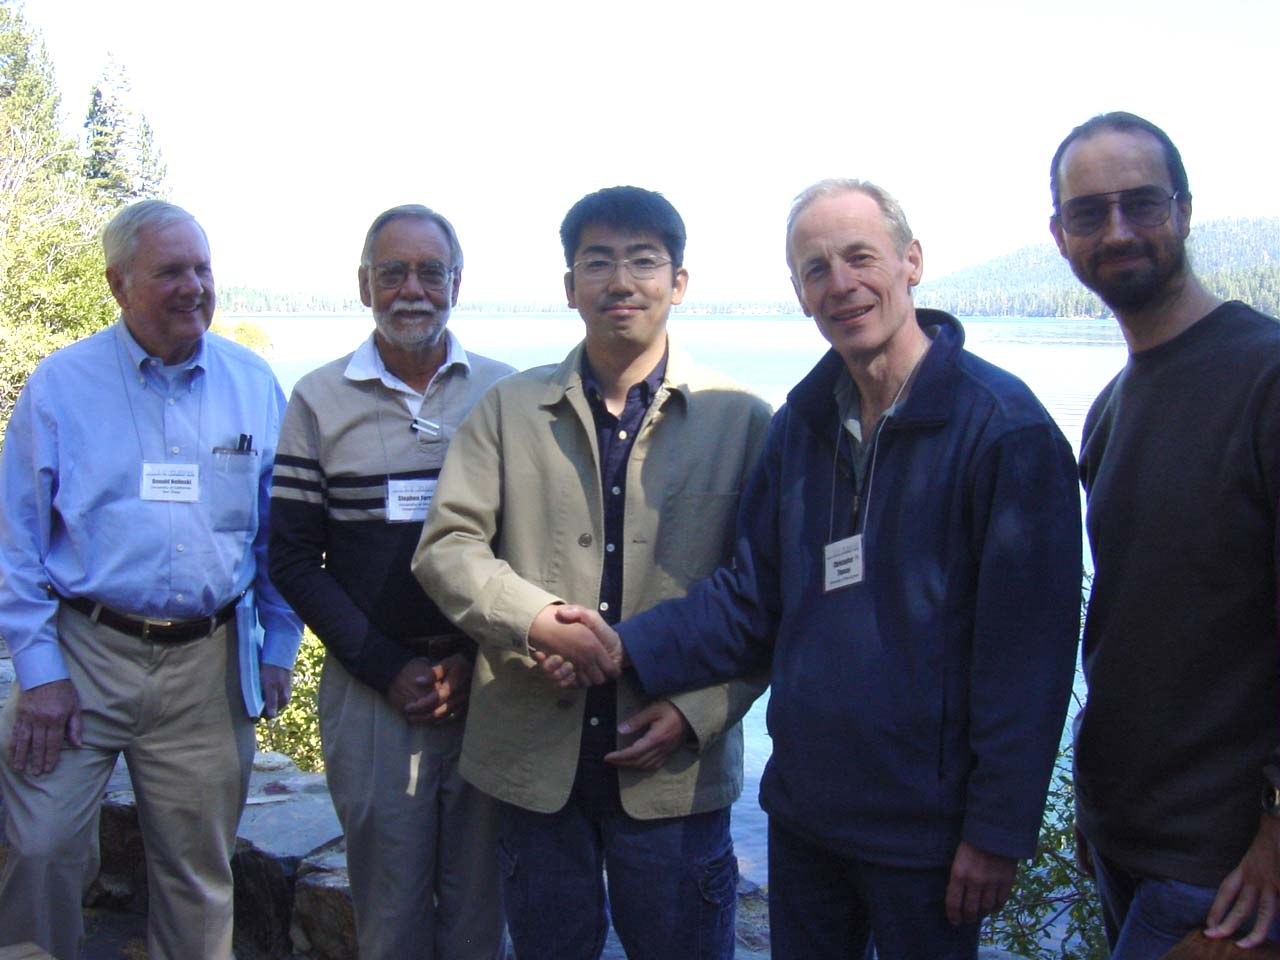 L-R: Don Helinski, Stephen Farrand, Masahiro Sota, Chris M. Thomas, Chris D. Thomas